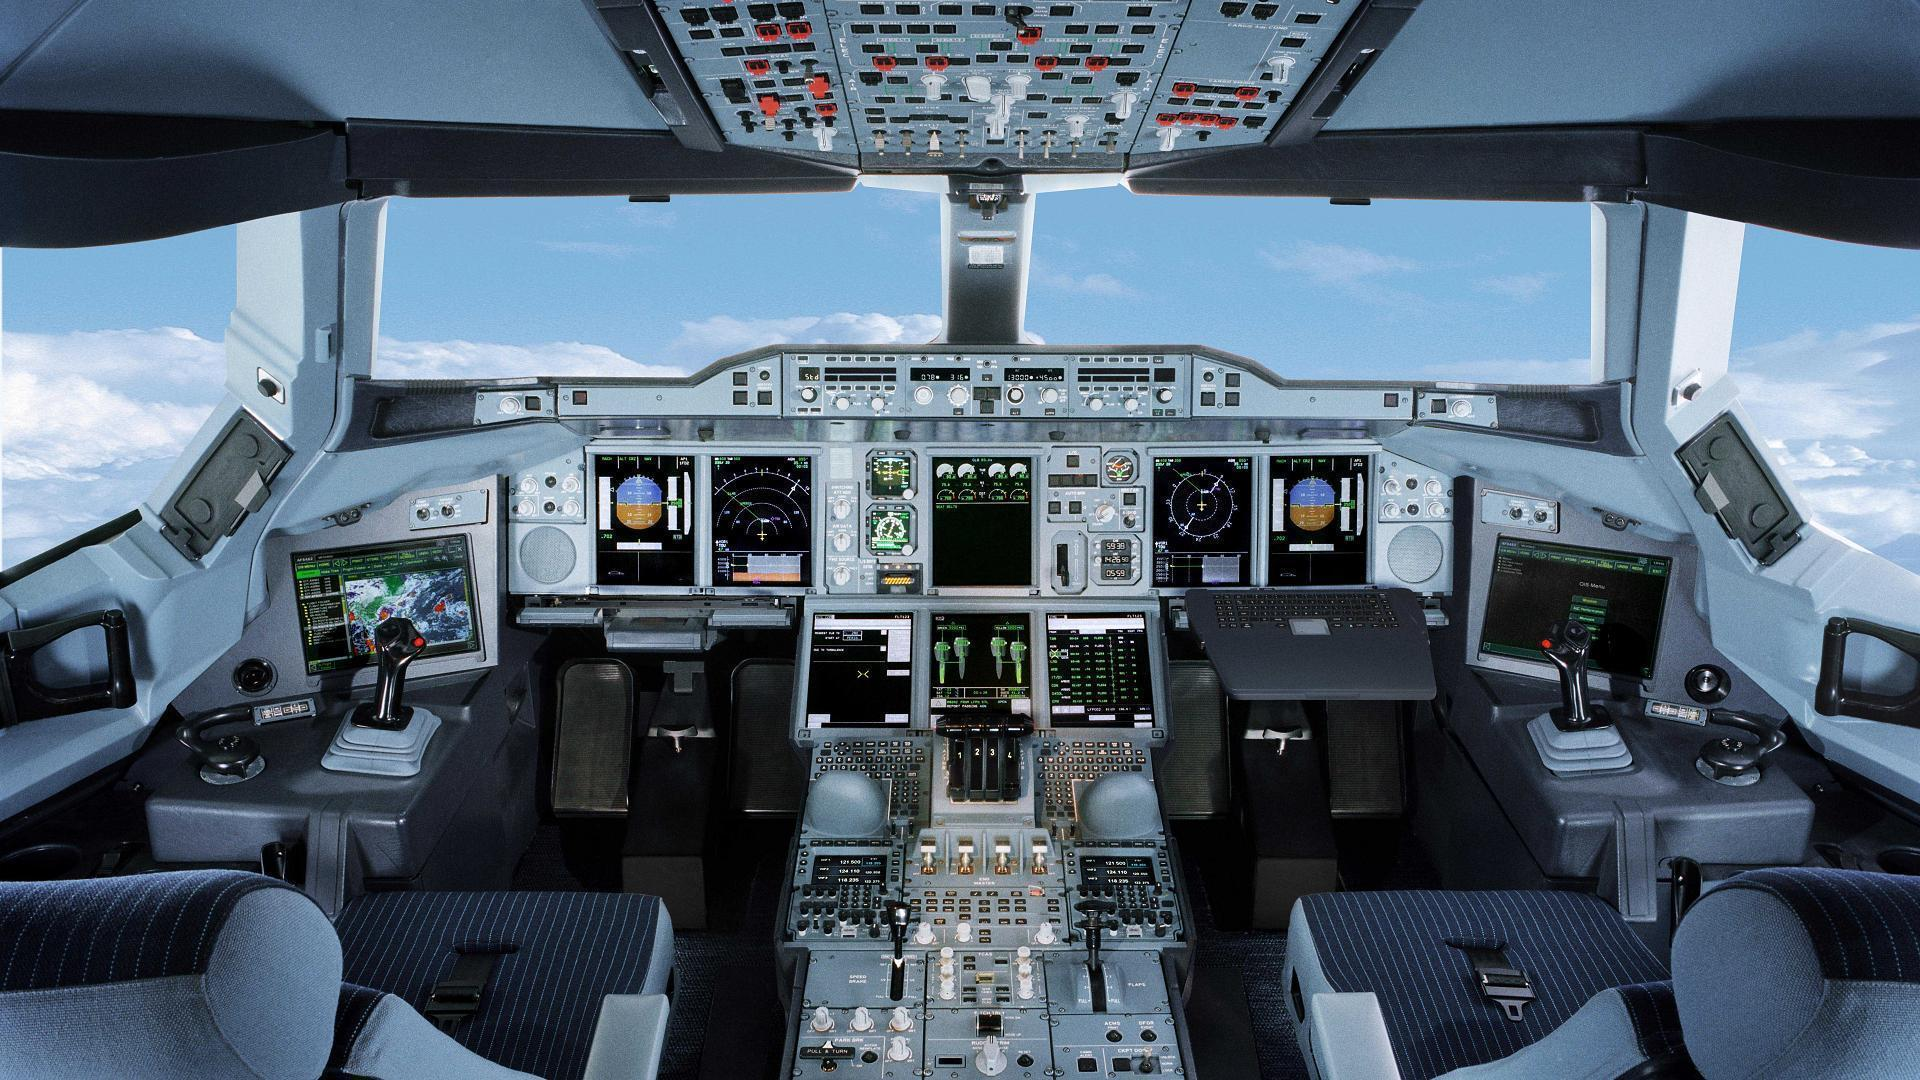 Airplane cockpit wallpapers wallpaper cave for Airplane cockpit wall mural